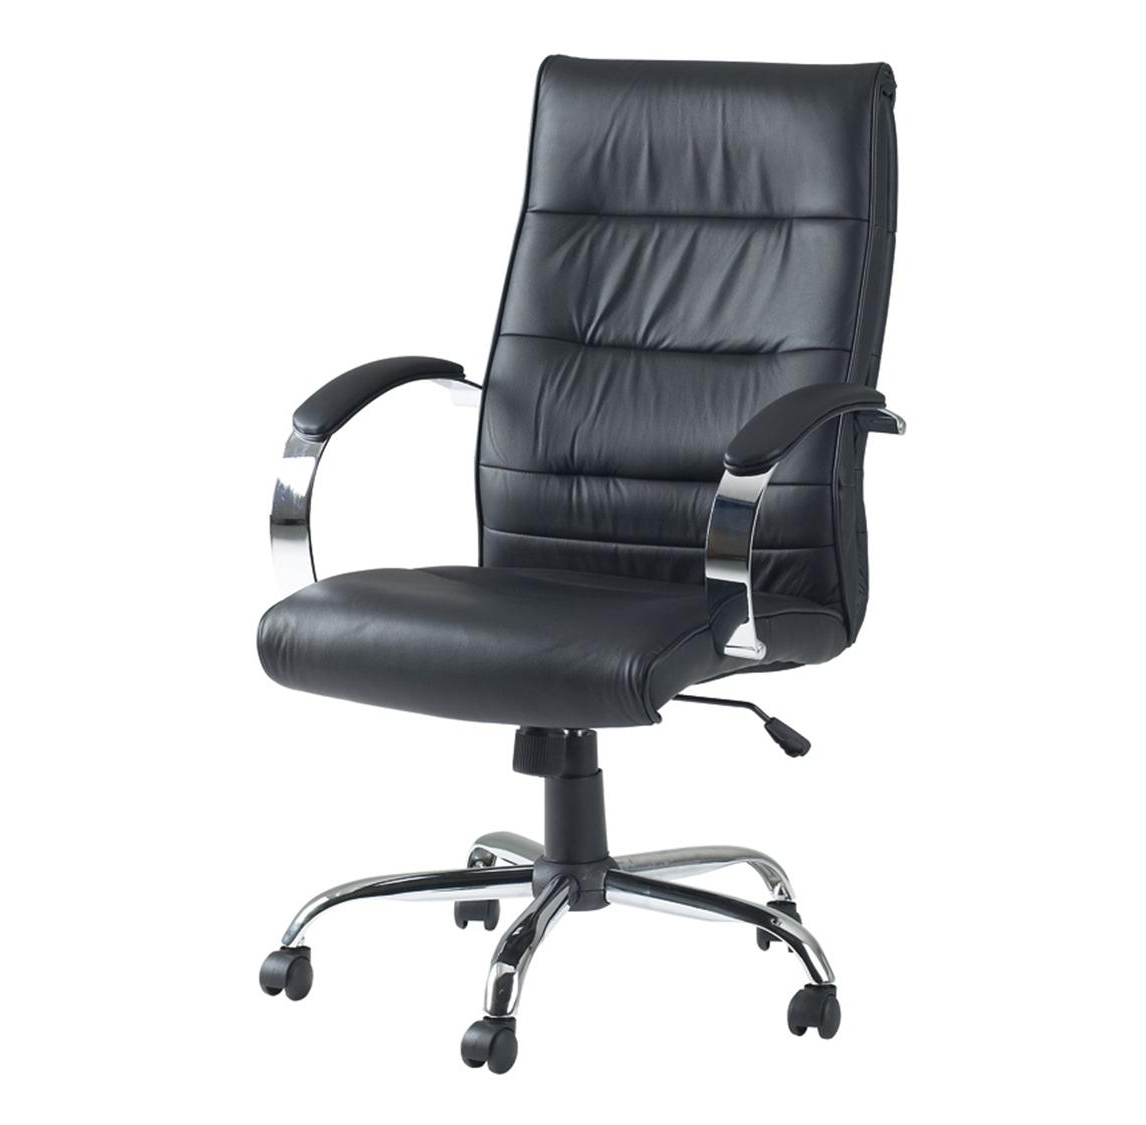 High End Executive Office Chairs In Favorite Chairs : Green Leather Office Chair Leather Office Desk High End (View 9 of 20)